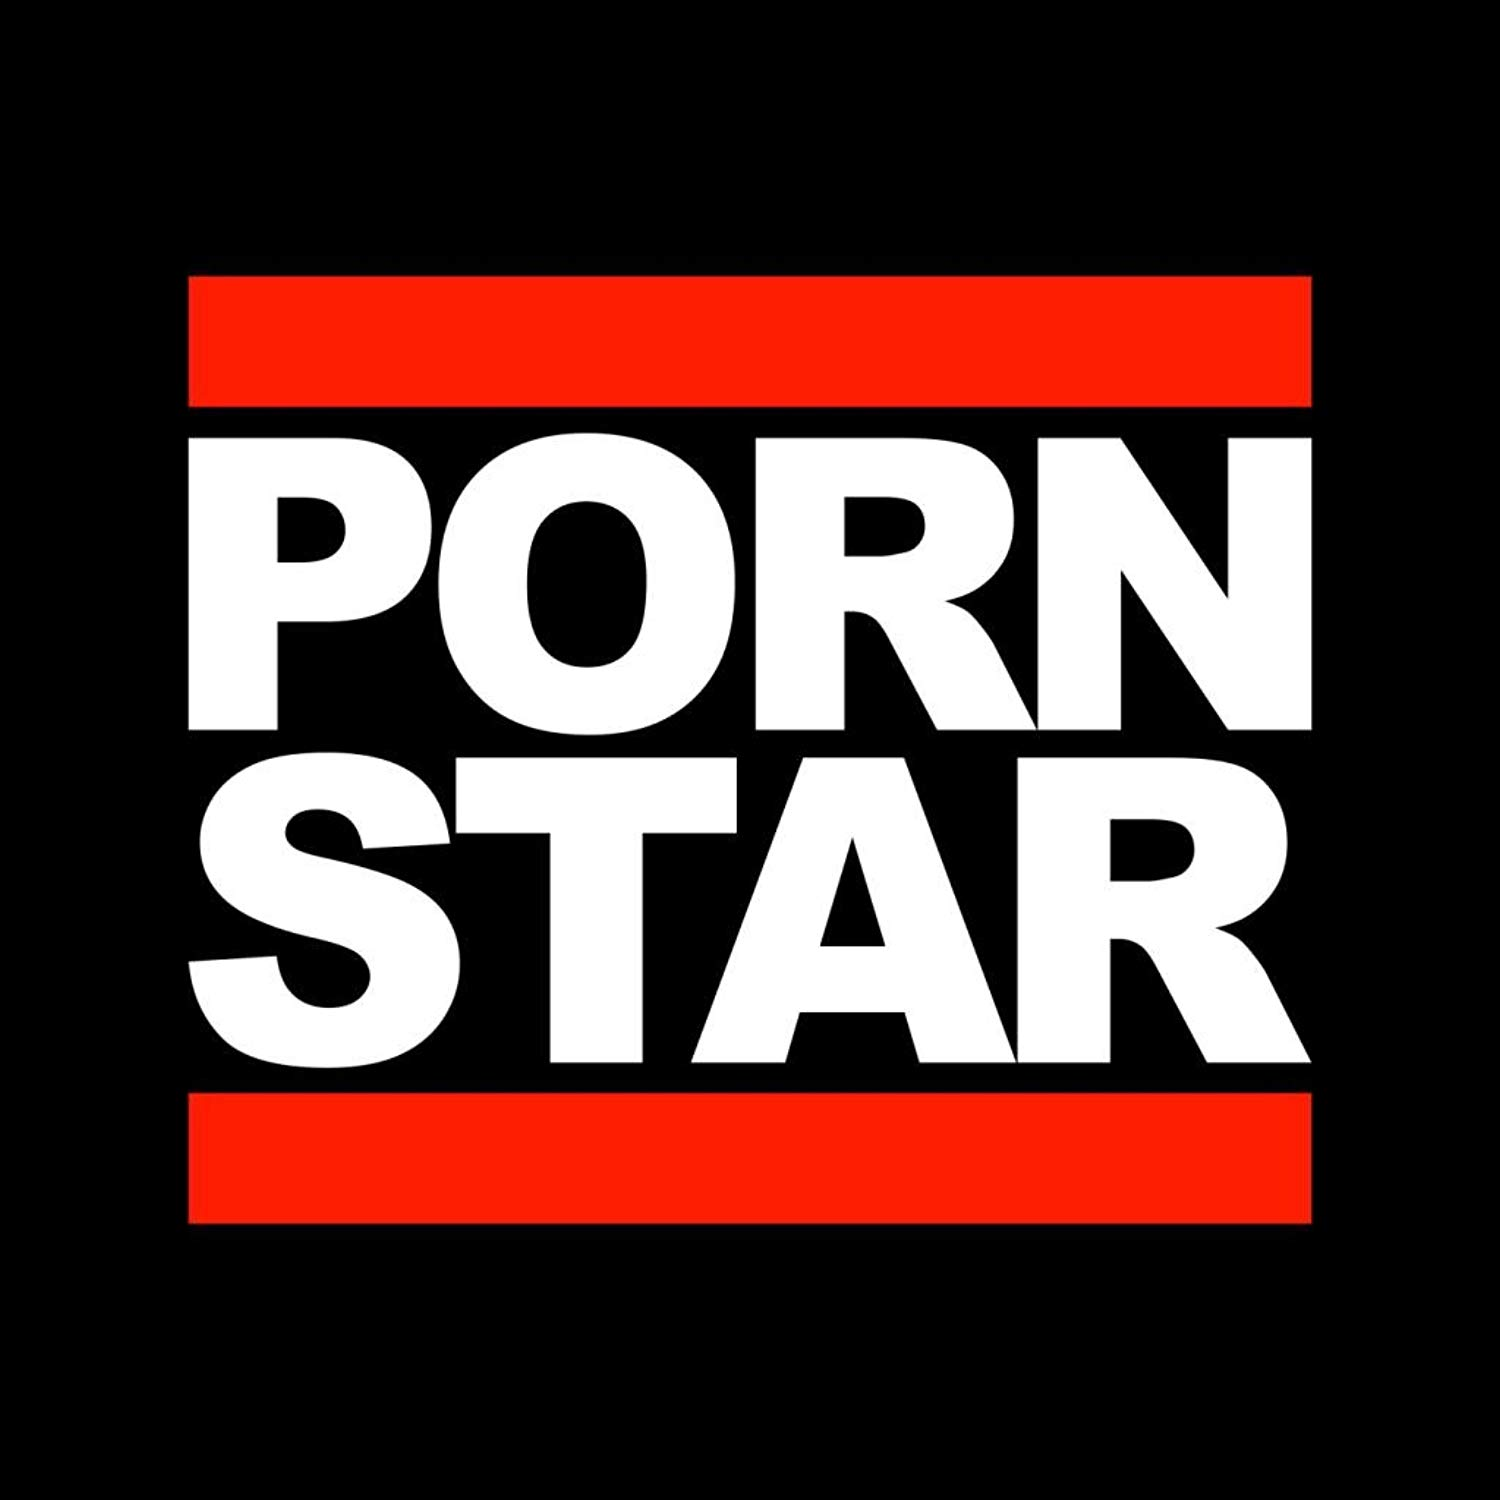 Pornstar runner dmc mix logo mens t shirt hip hop novelty t shirts mens brand clothing in t shirts from mens clothing on aliexpress com alibaba group